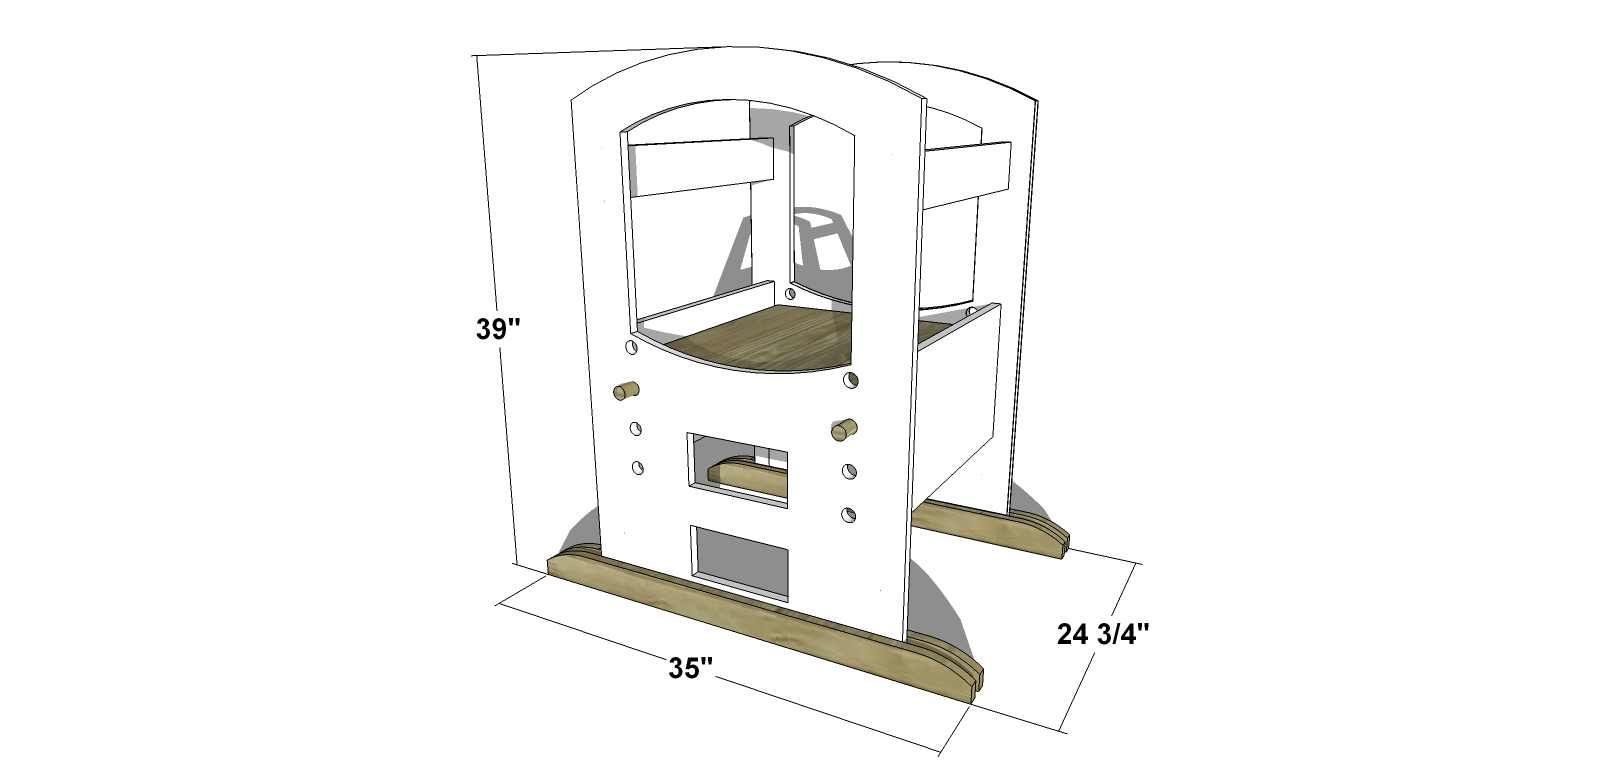 Free Woodworking Plans to Build a Toddler Learning Tower